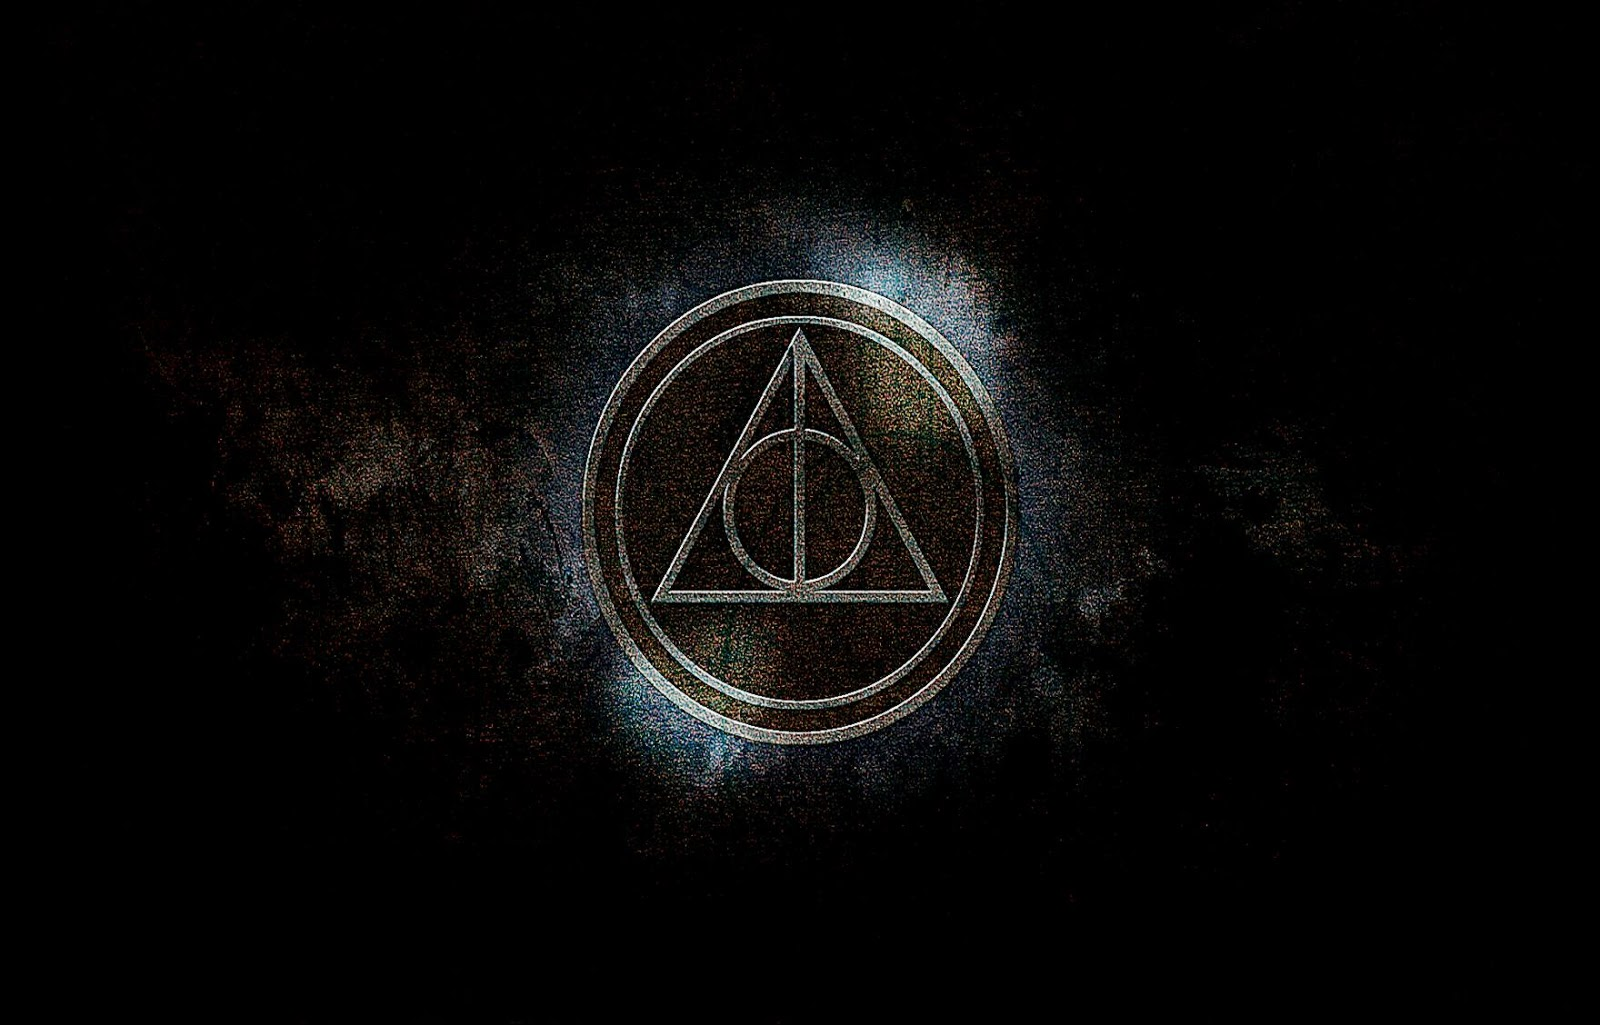 44 1080p Harry Potter Wallpaper On Wallpapersafari